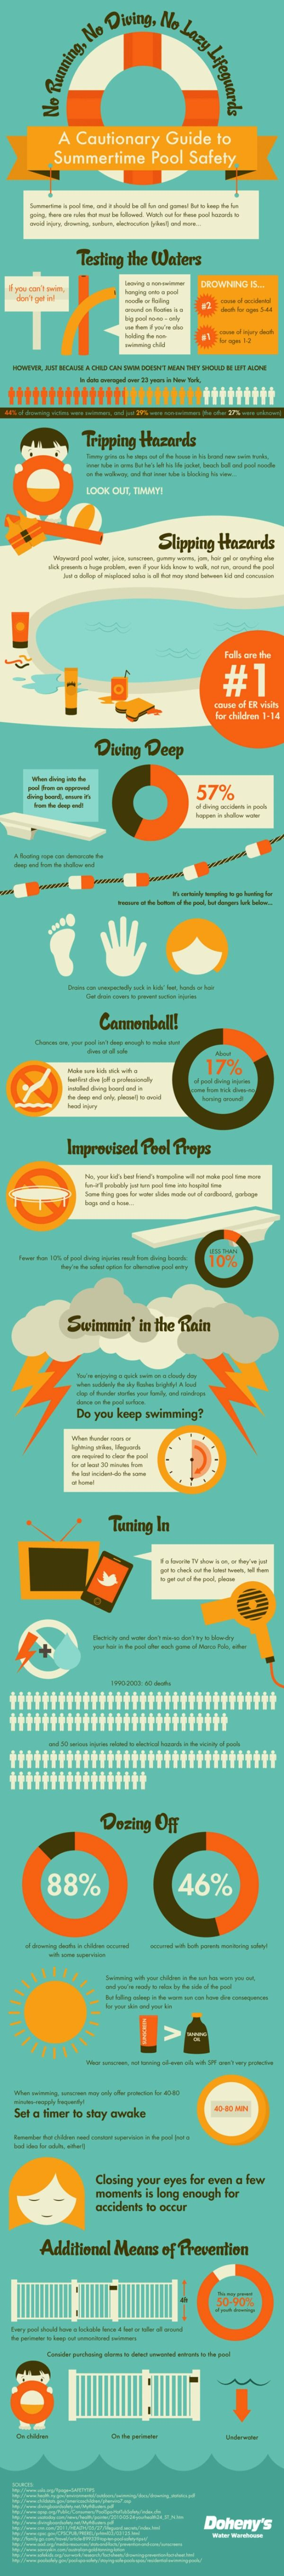 How to be safe in the pool this summer - for your family, and tips to keep guests safe too. Super important.